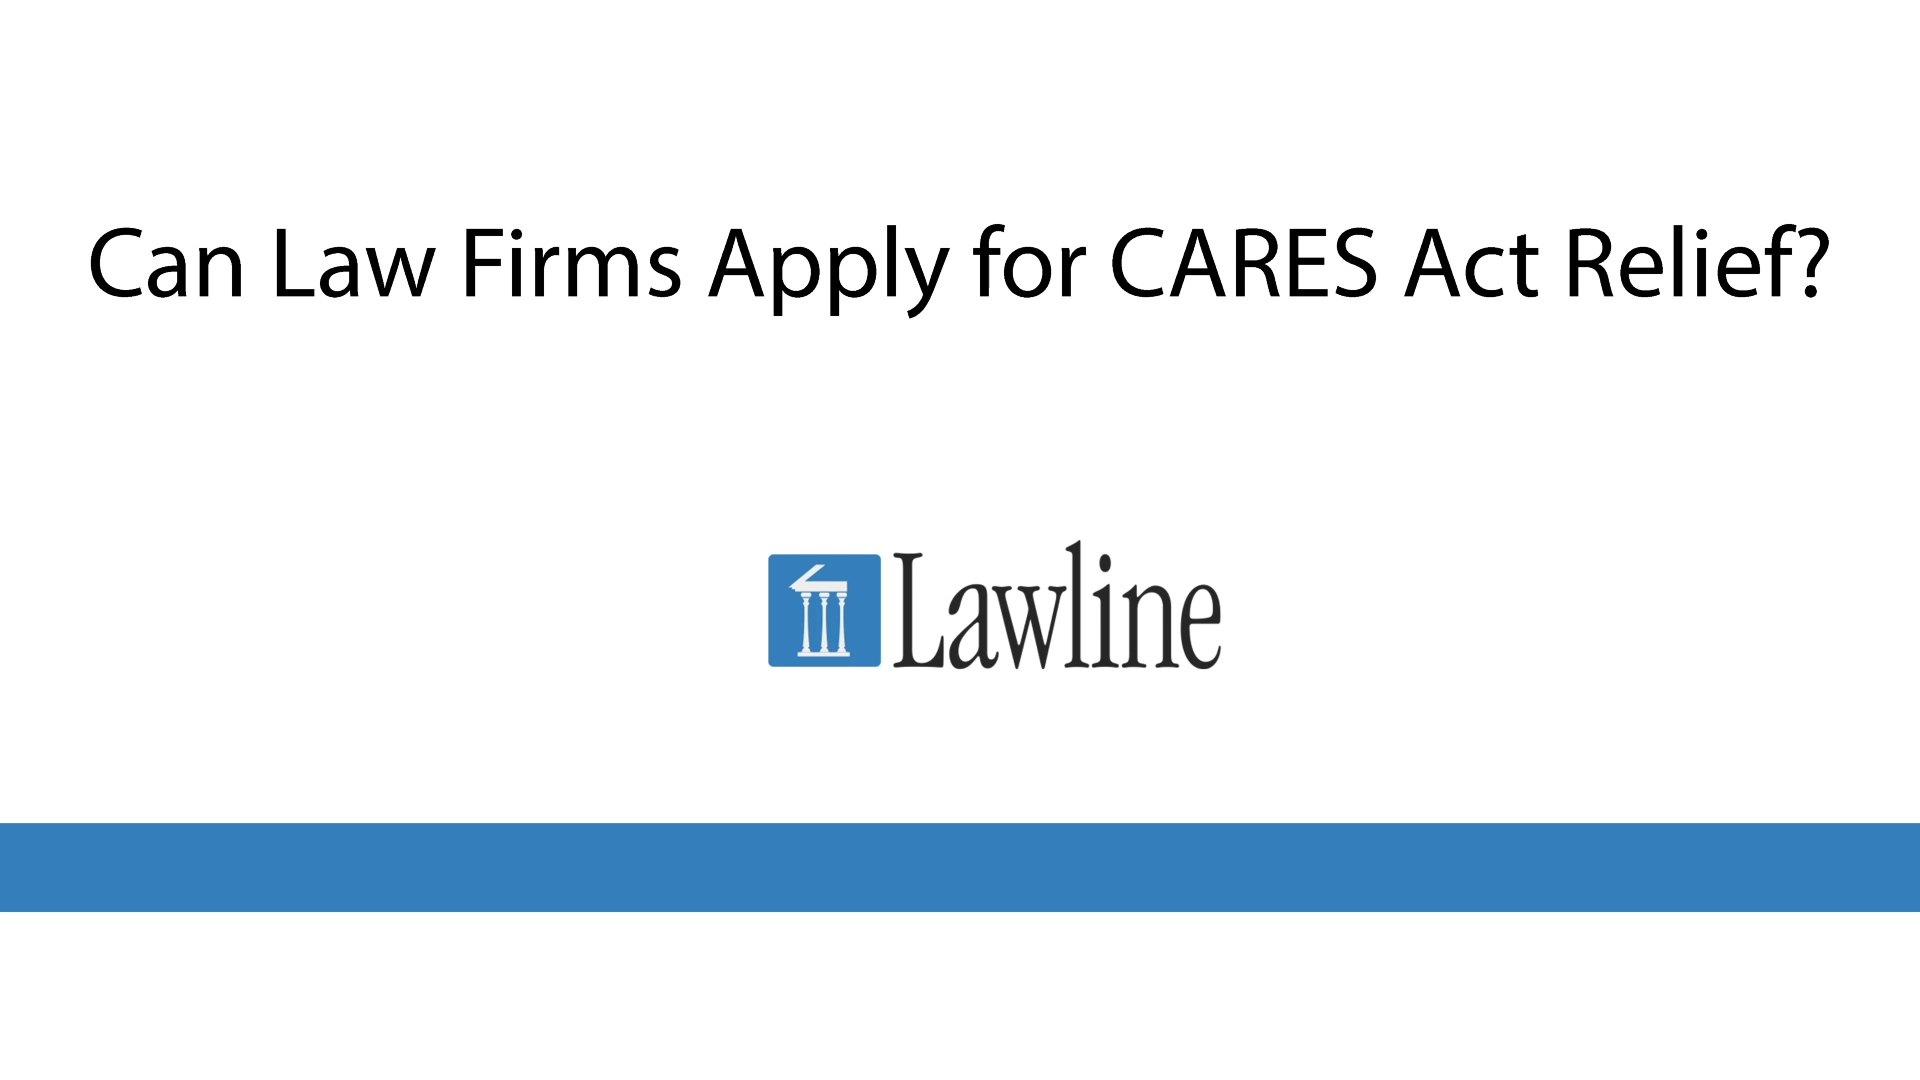 Lawline Short- Can Law Firms Apply for Relief Under the CARES Act Edit